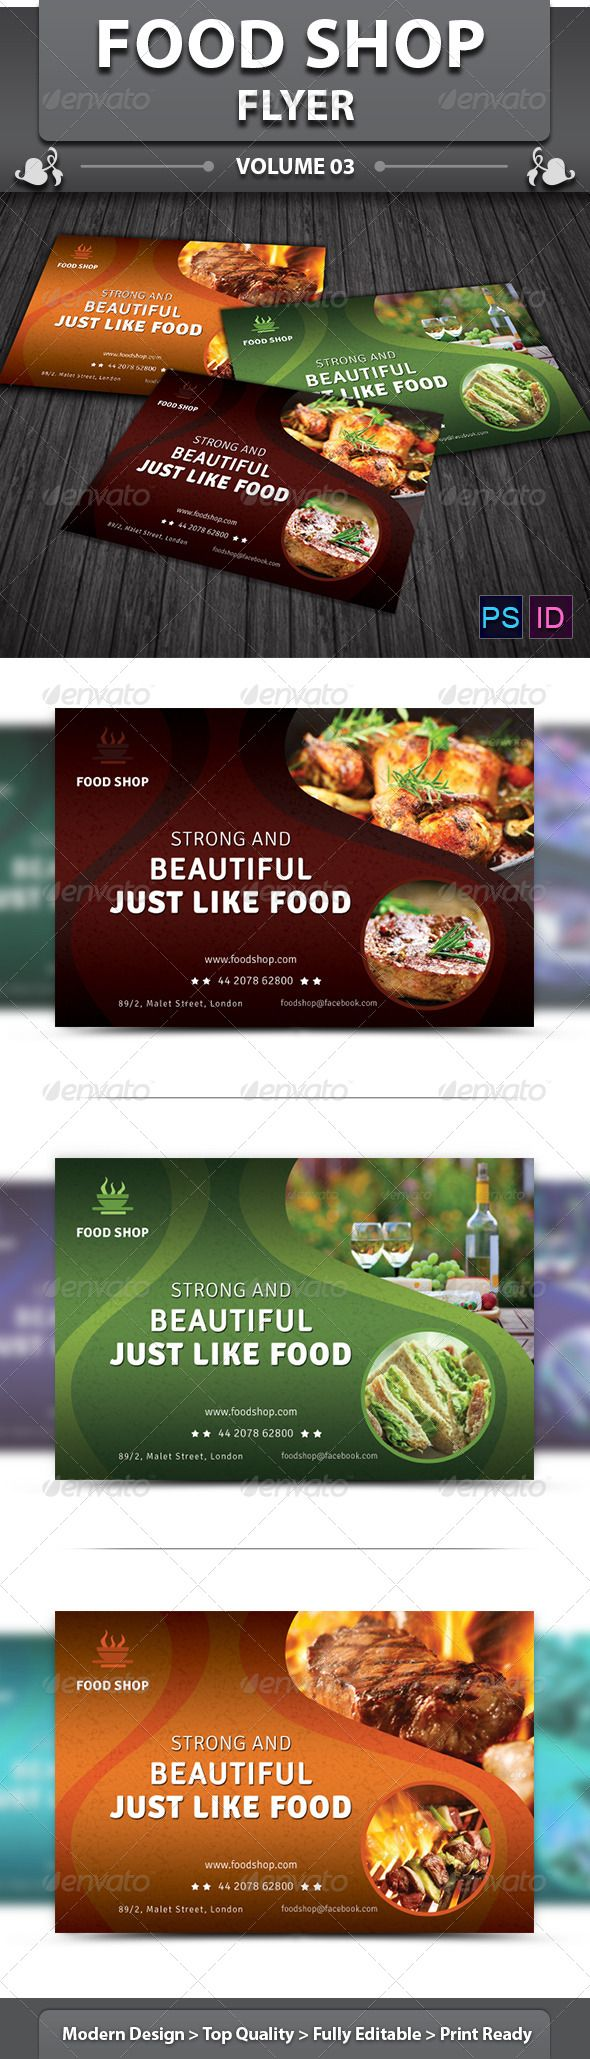 Restaurant Business Flyer | Volume 13 #meat tomato #Pepper banner  • Download here → https://graphicriver.net/item/restaurant-business-flyer-volume-13/5741815?ref=pxcr